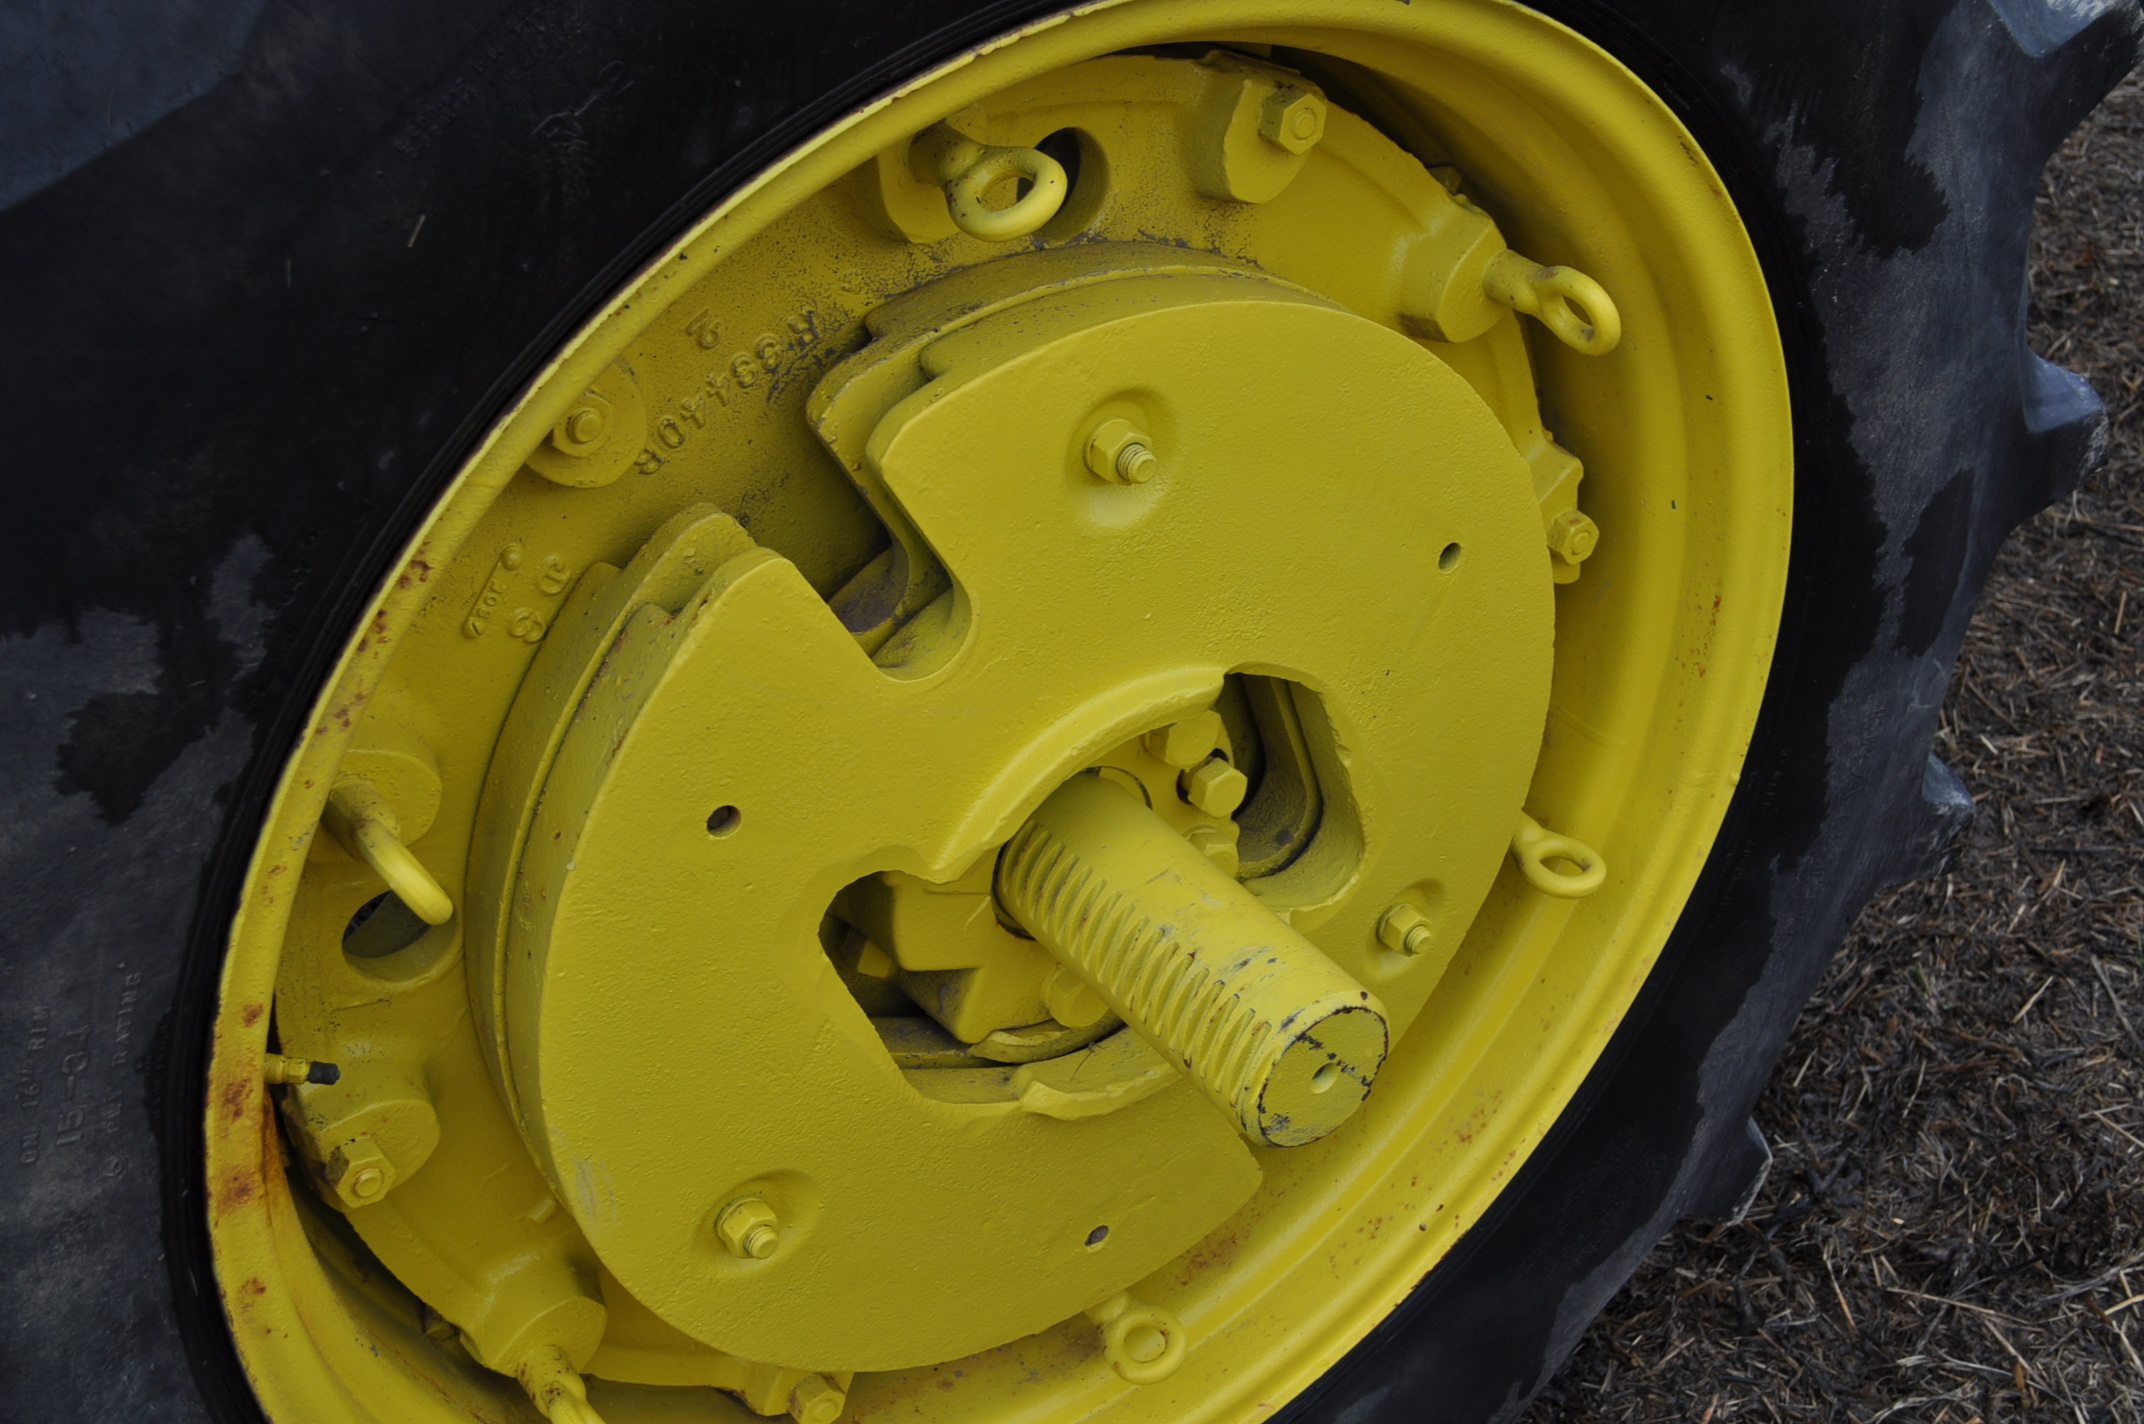 John Deere 4020 tractor, diesel, 18.4-34 tires w/ clamp on dual rims, 11L-15 front, ROPS w/ - Image 13 of 22